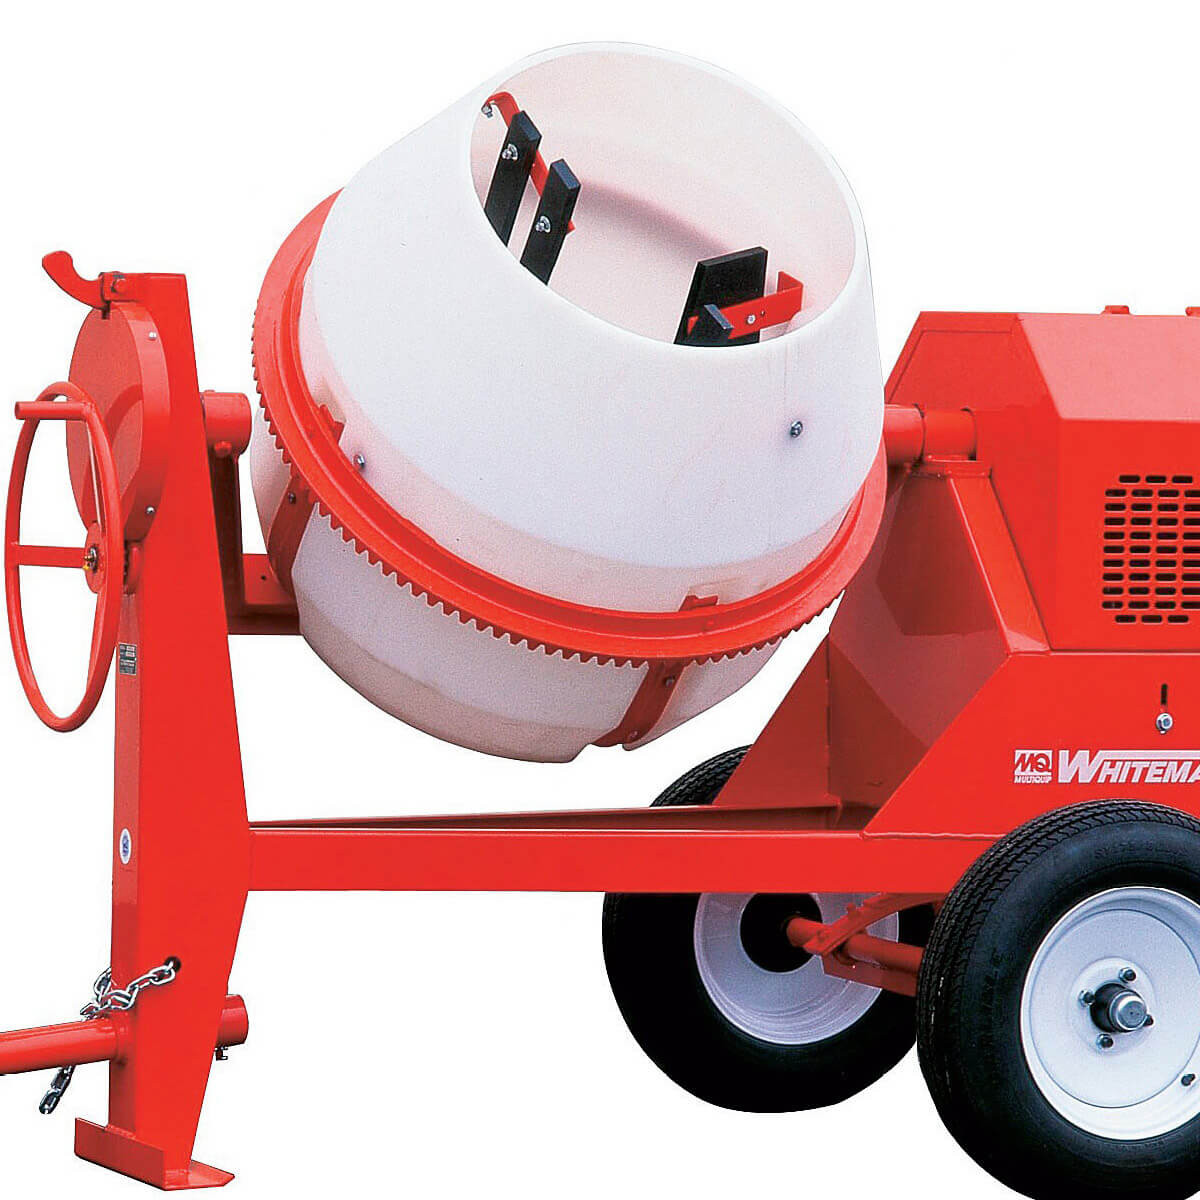 Multiquip Whiteman mixer tow bar